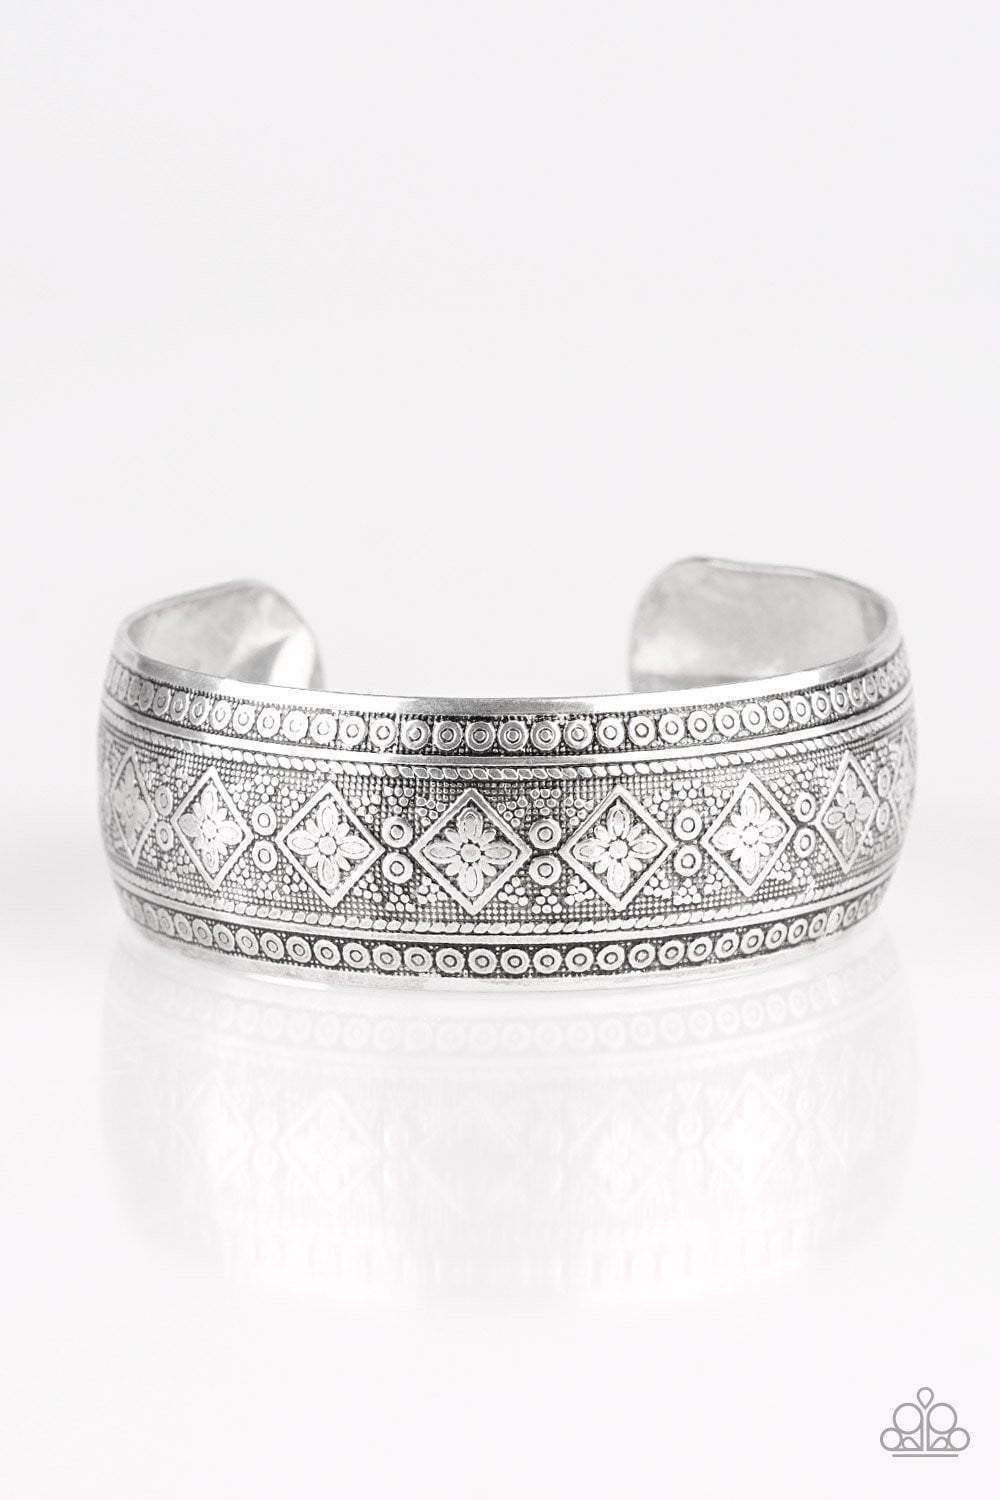 Paparazzi Gorgeously Gypsy - Silver Bracelet - Bling It On Online